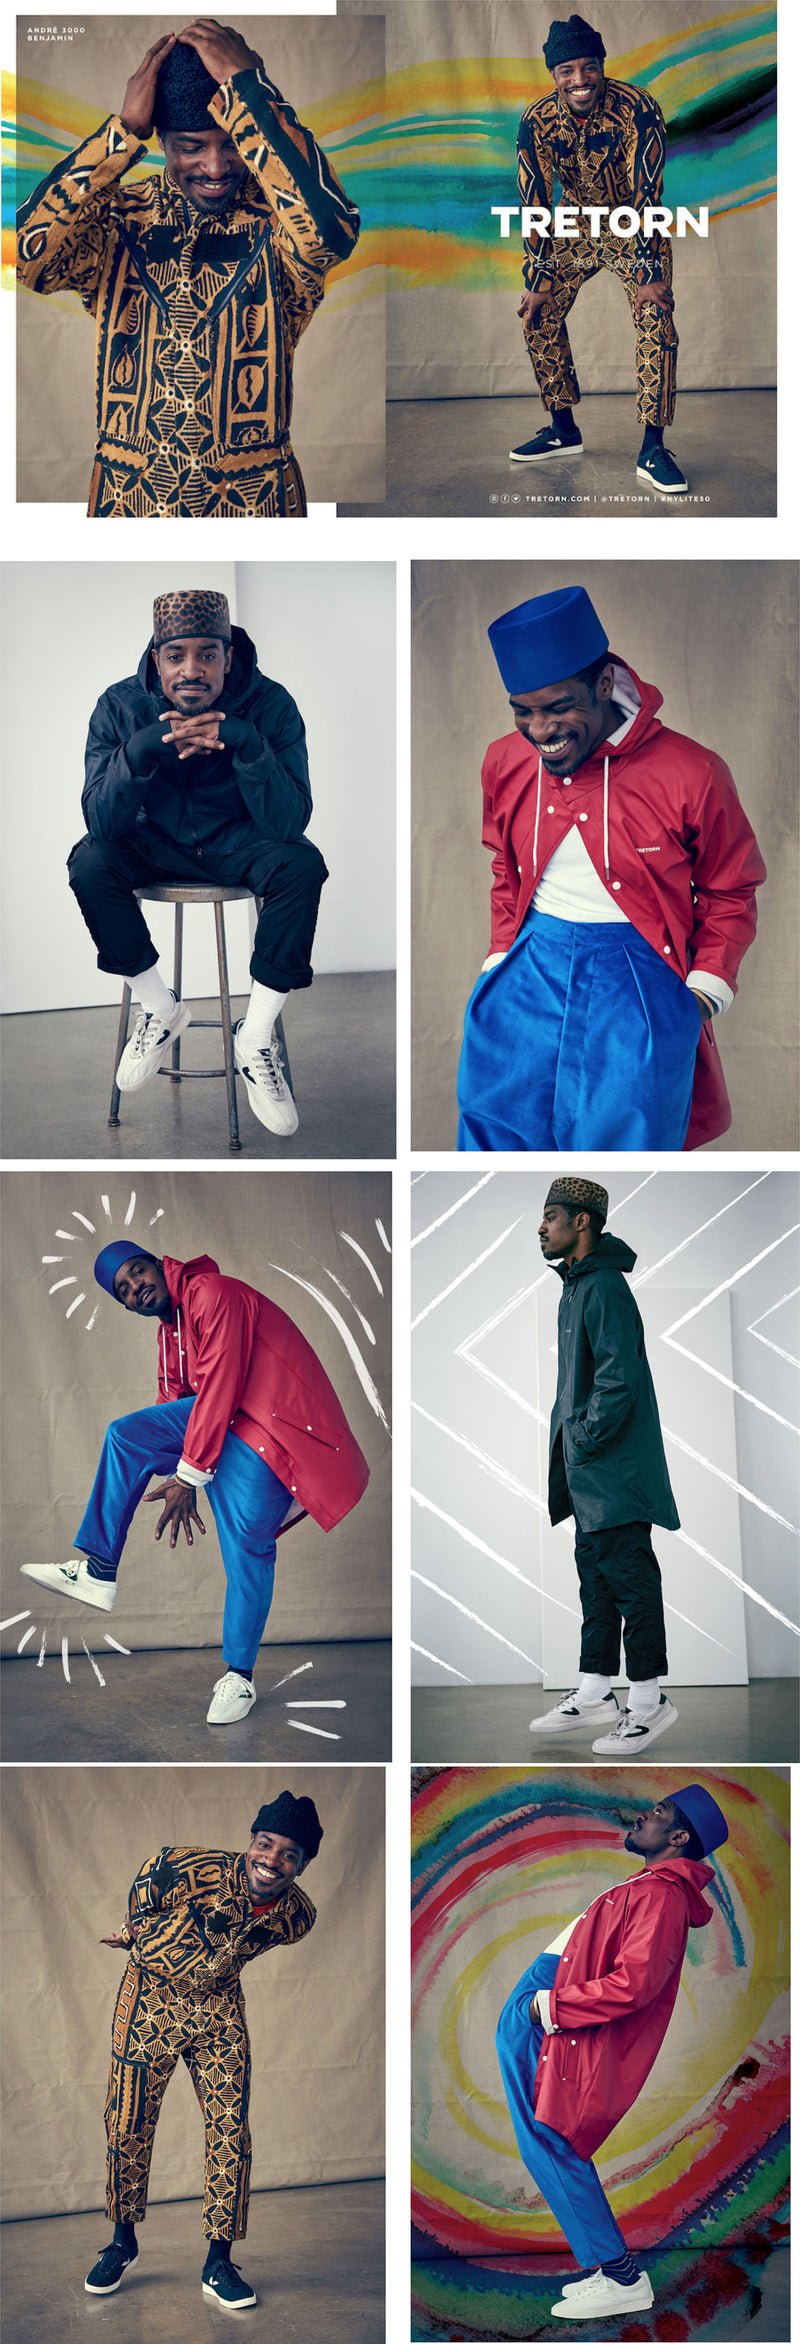 André 3000  in Tretorn's Fall Collection